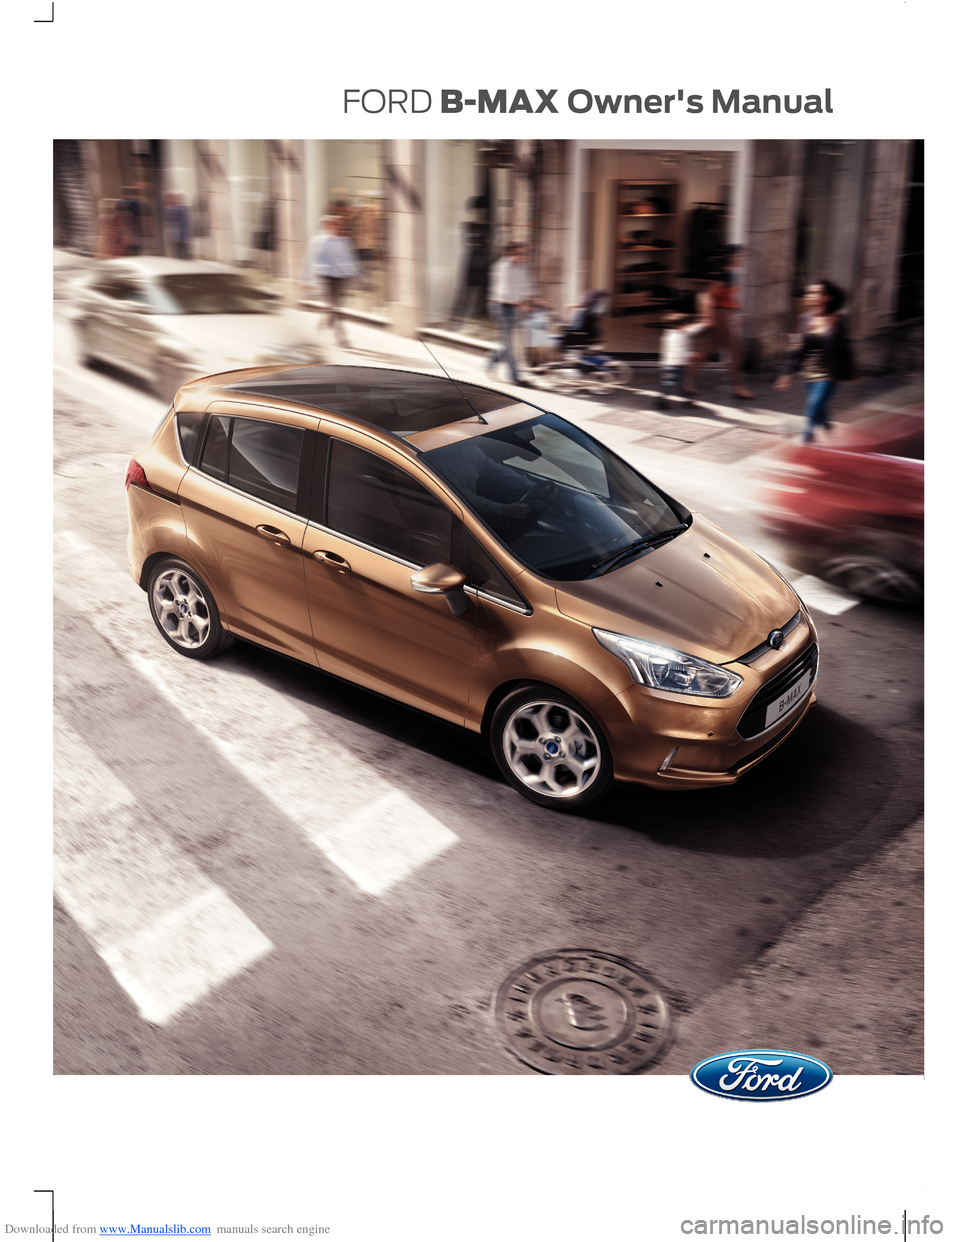 FORD B MAX 2012 1.G Owners Manual, Page 1